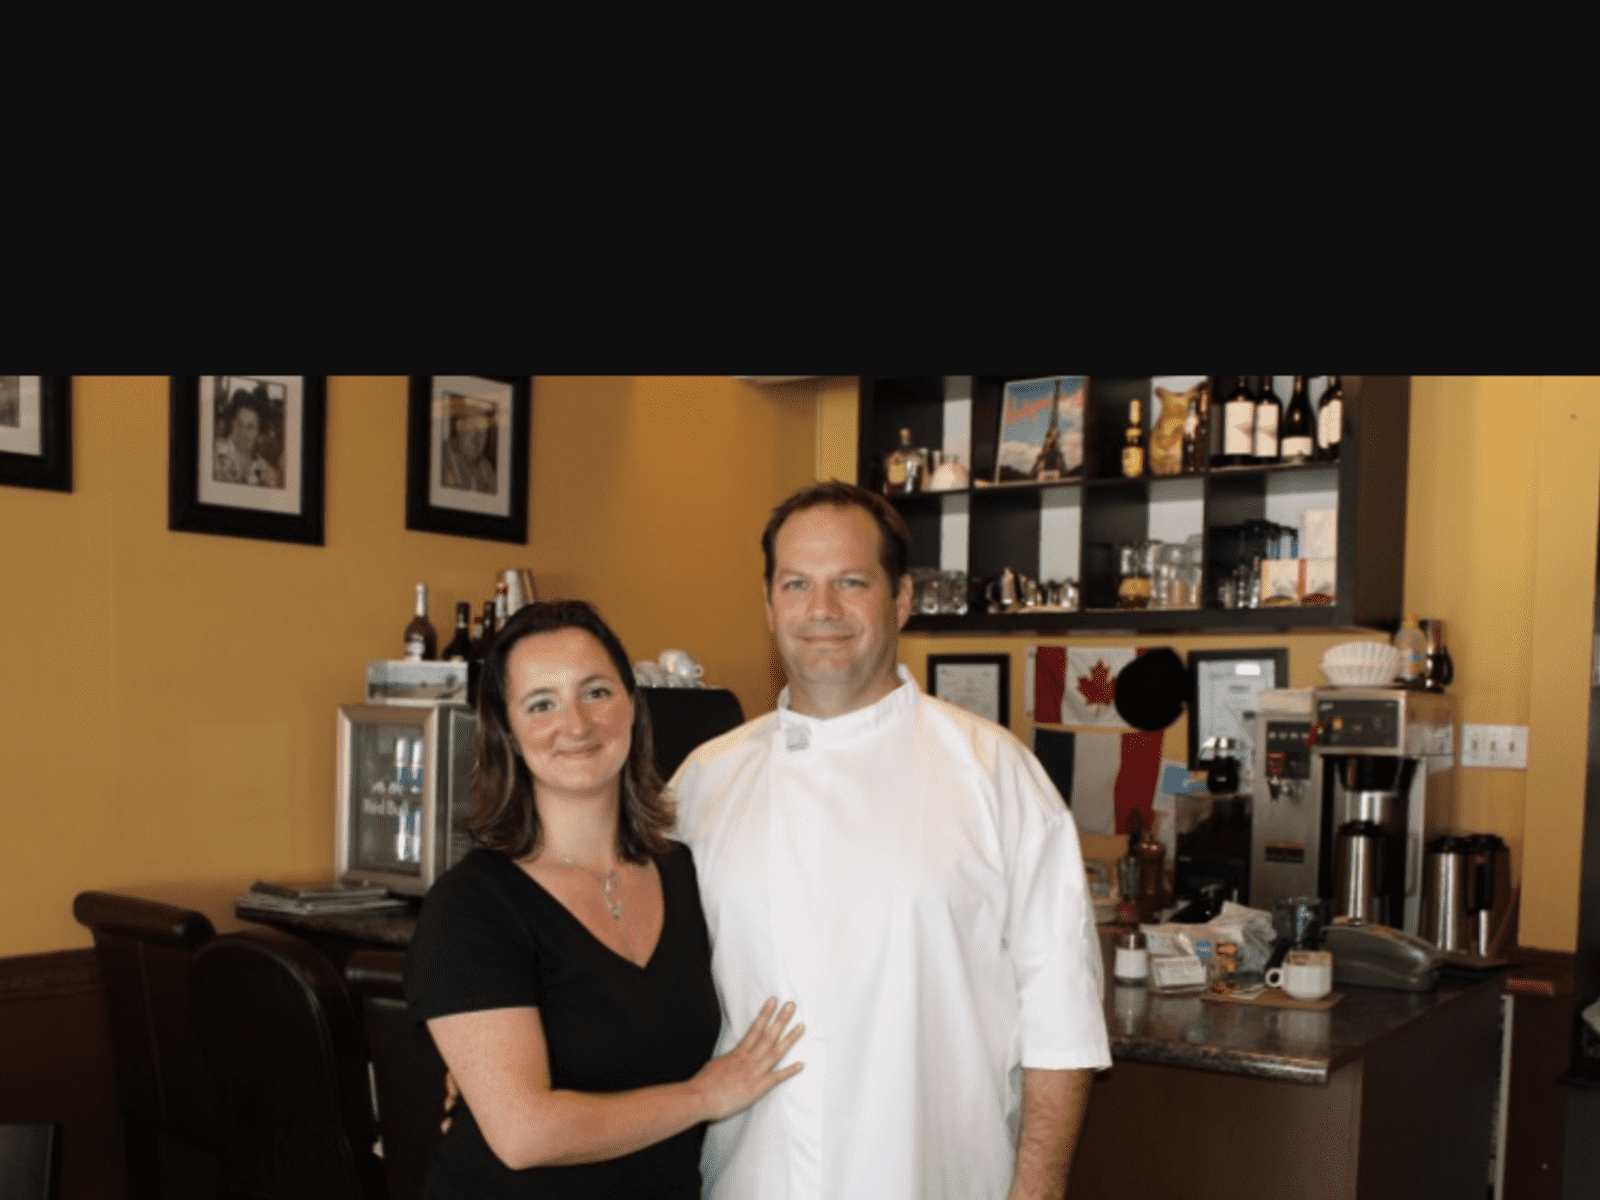 Isabelle & Ross from Vancouver, British Columbia, Canada